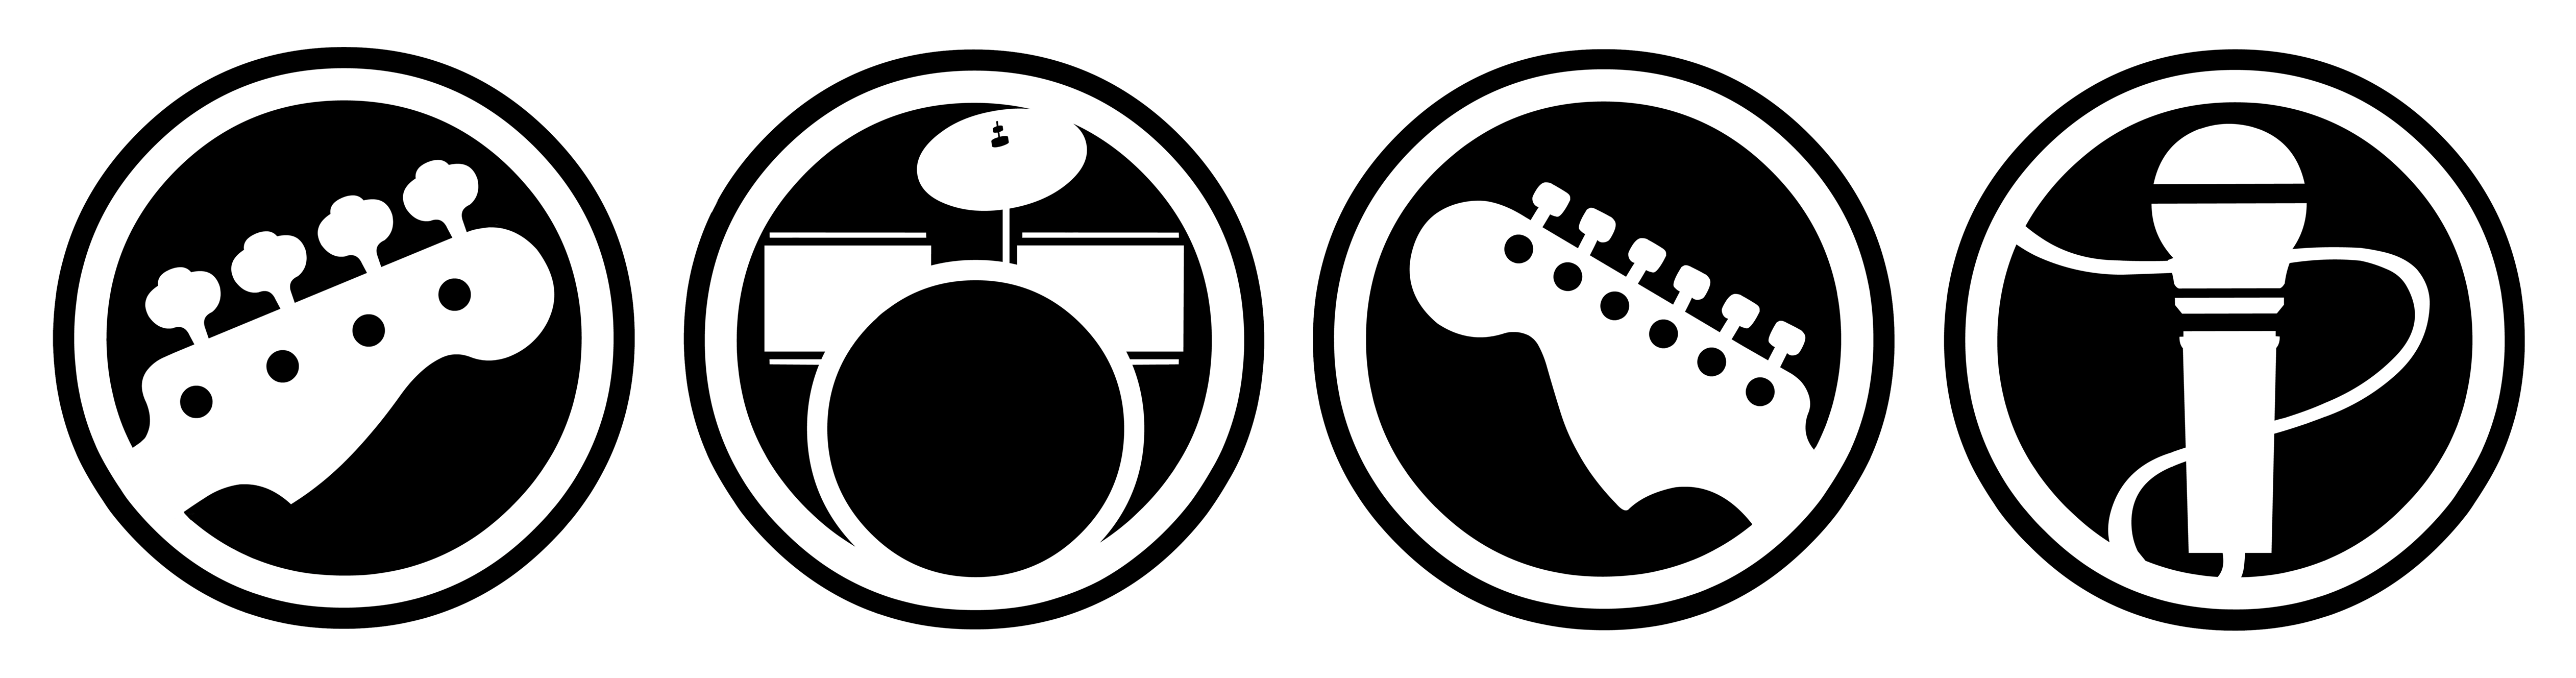 clipart free library rock band harmonix drums set